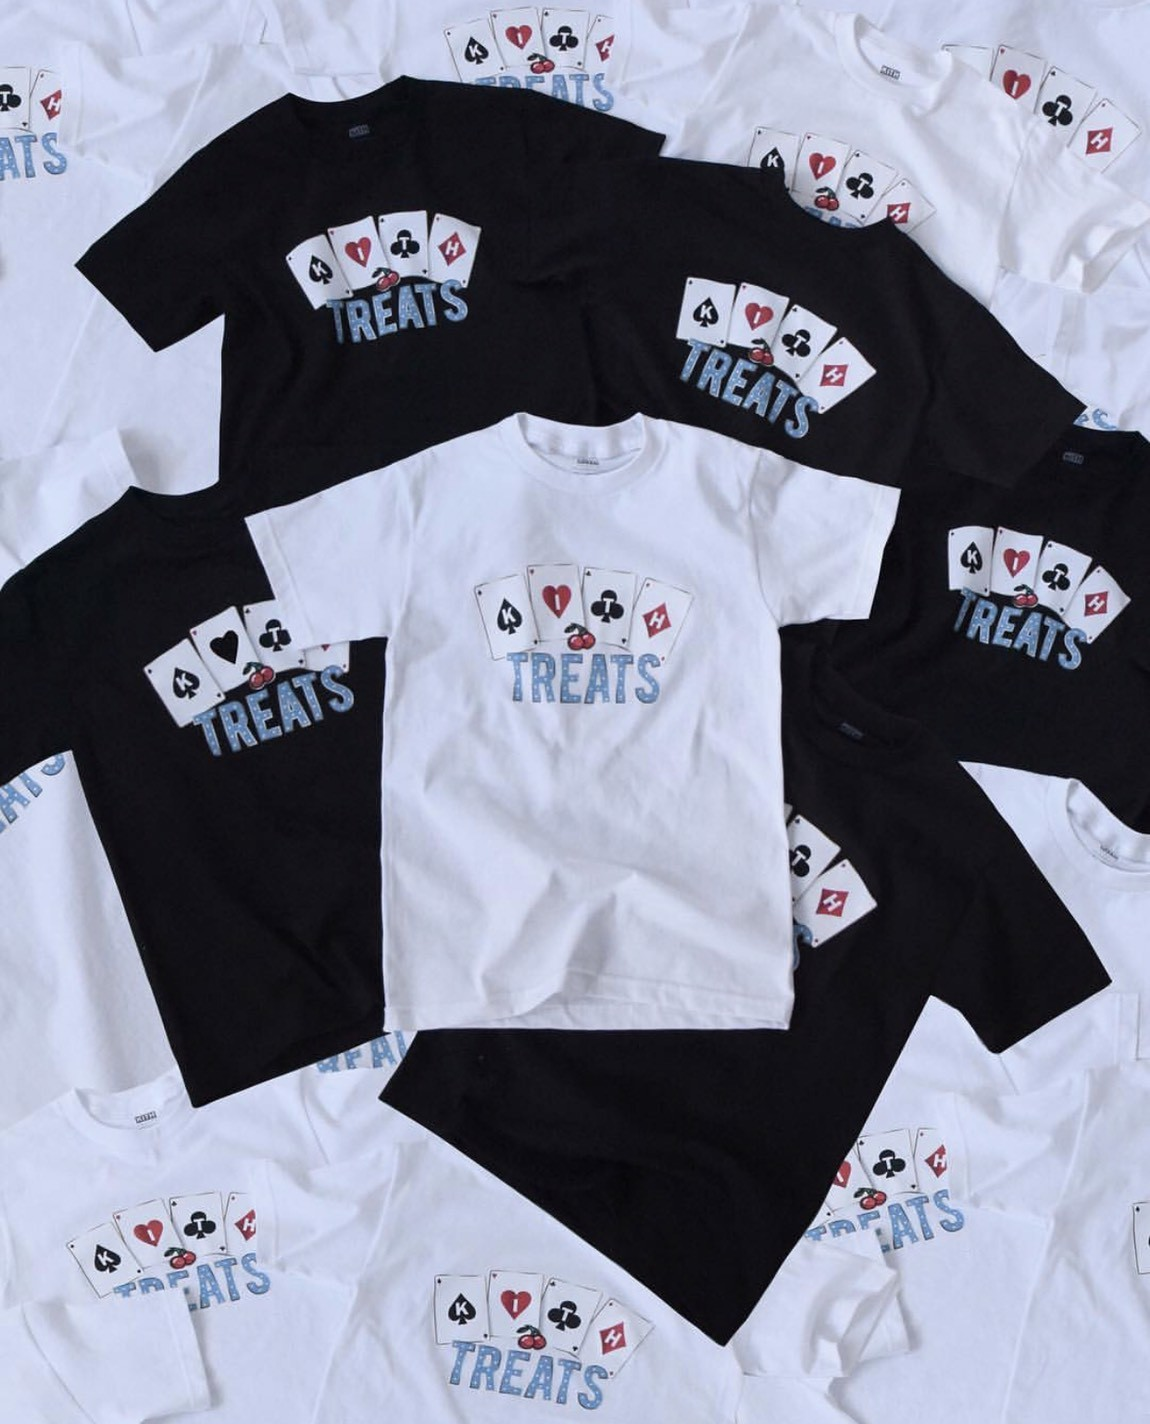 ▲KITH Treats系列。(圖/翻攝自IG@kithtreats)